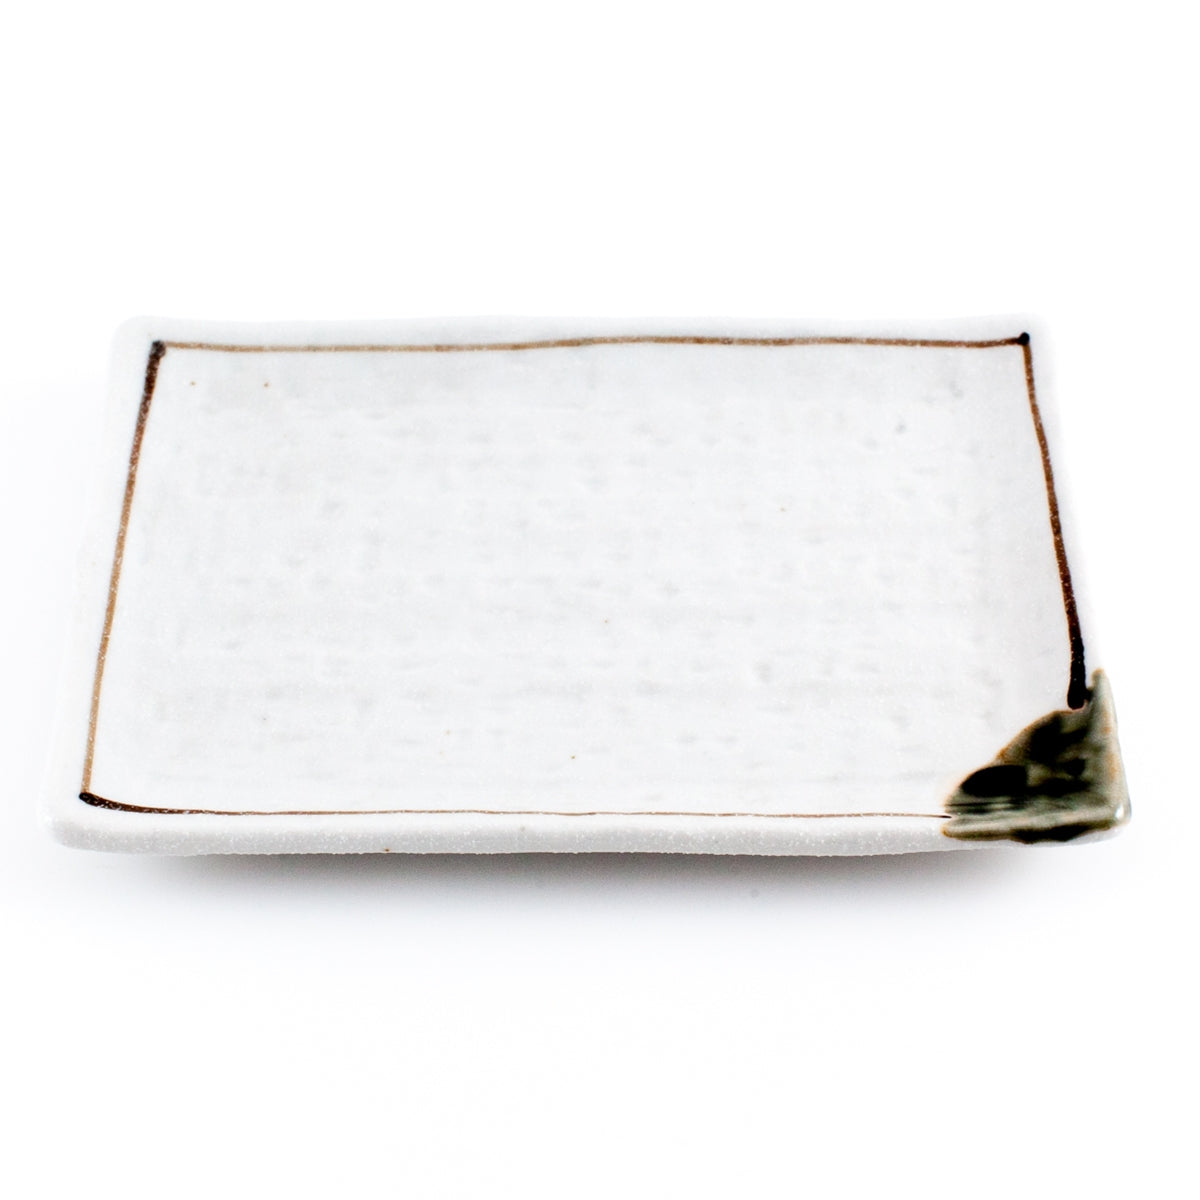 "Shino White Rectangular Plate with Brown Line 6.97"" x 4.65"""